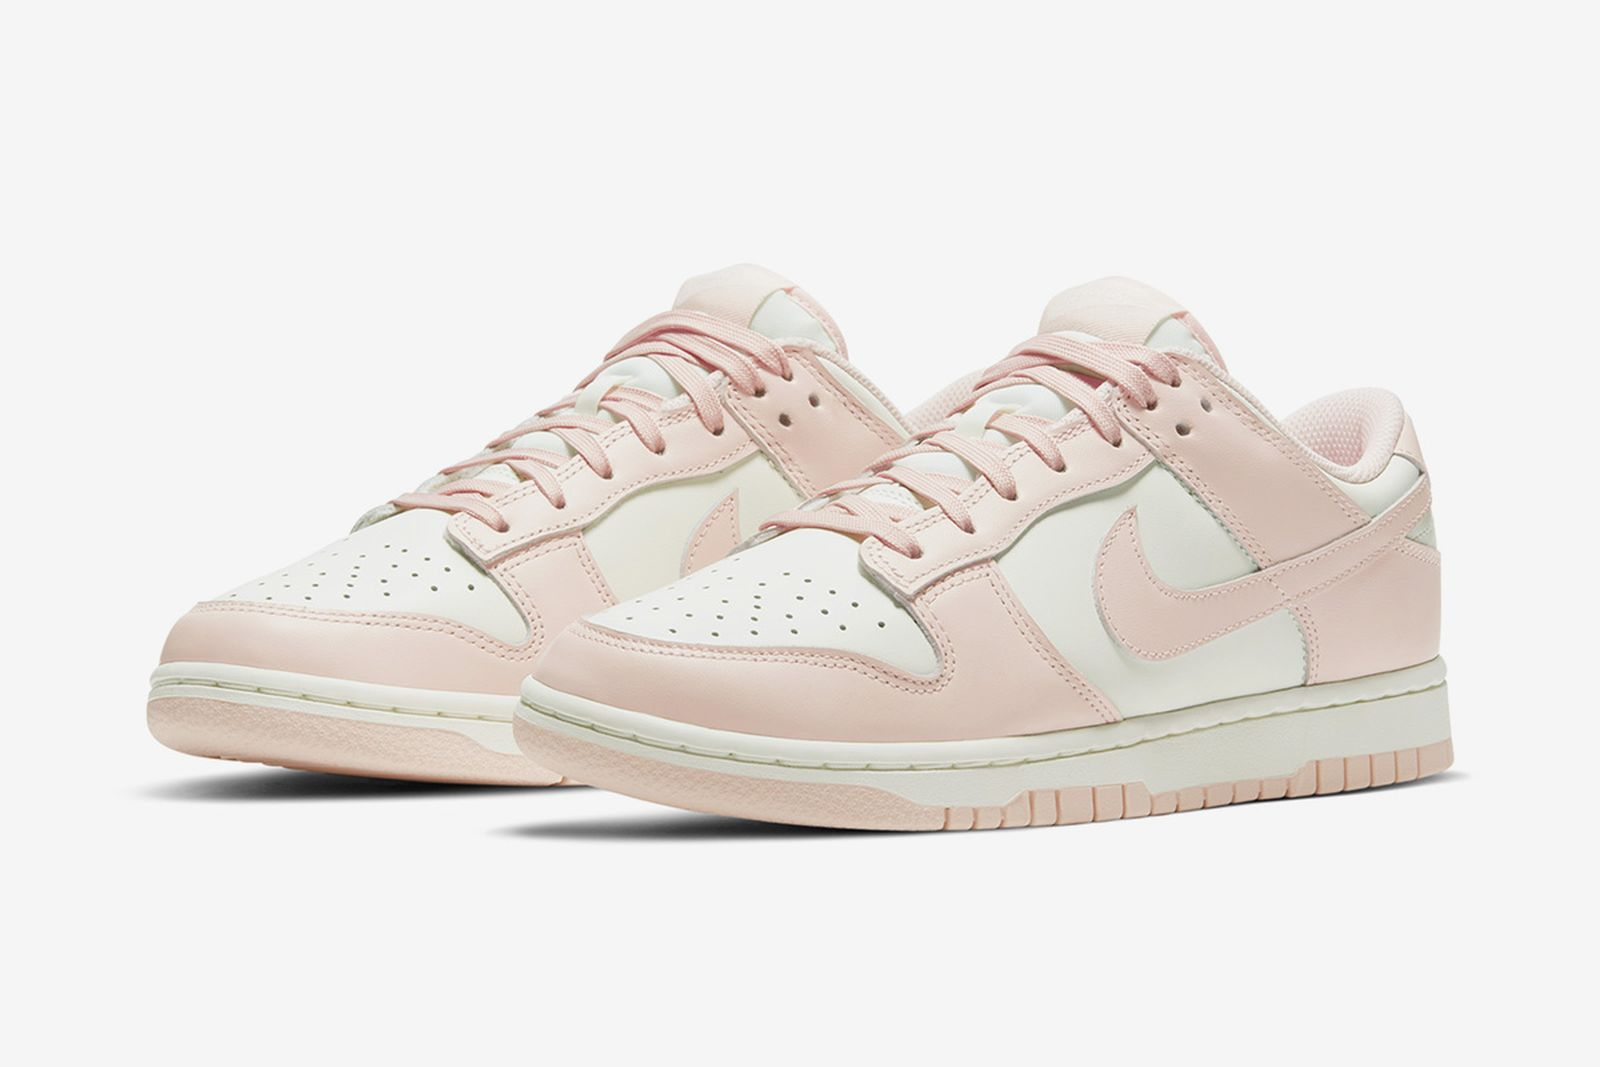 nike-dunk-spring-2021-release-date-price-1-28